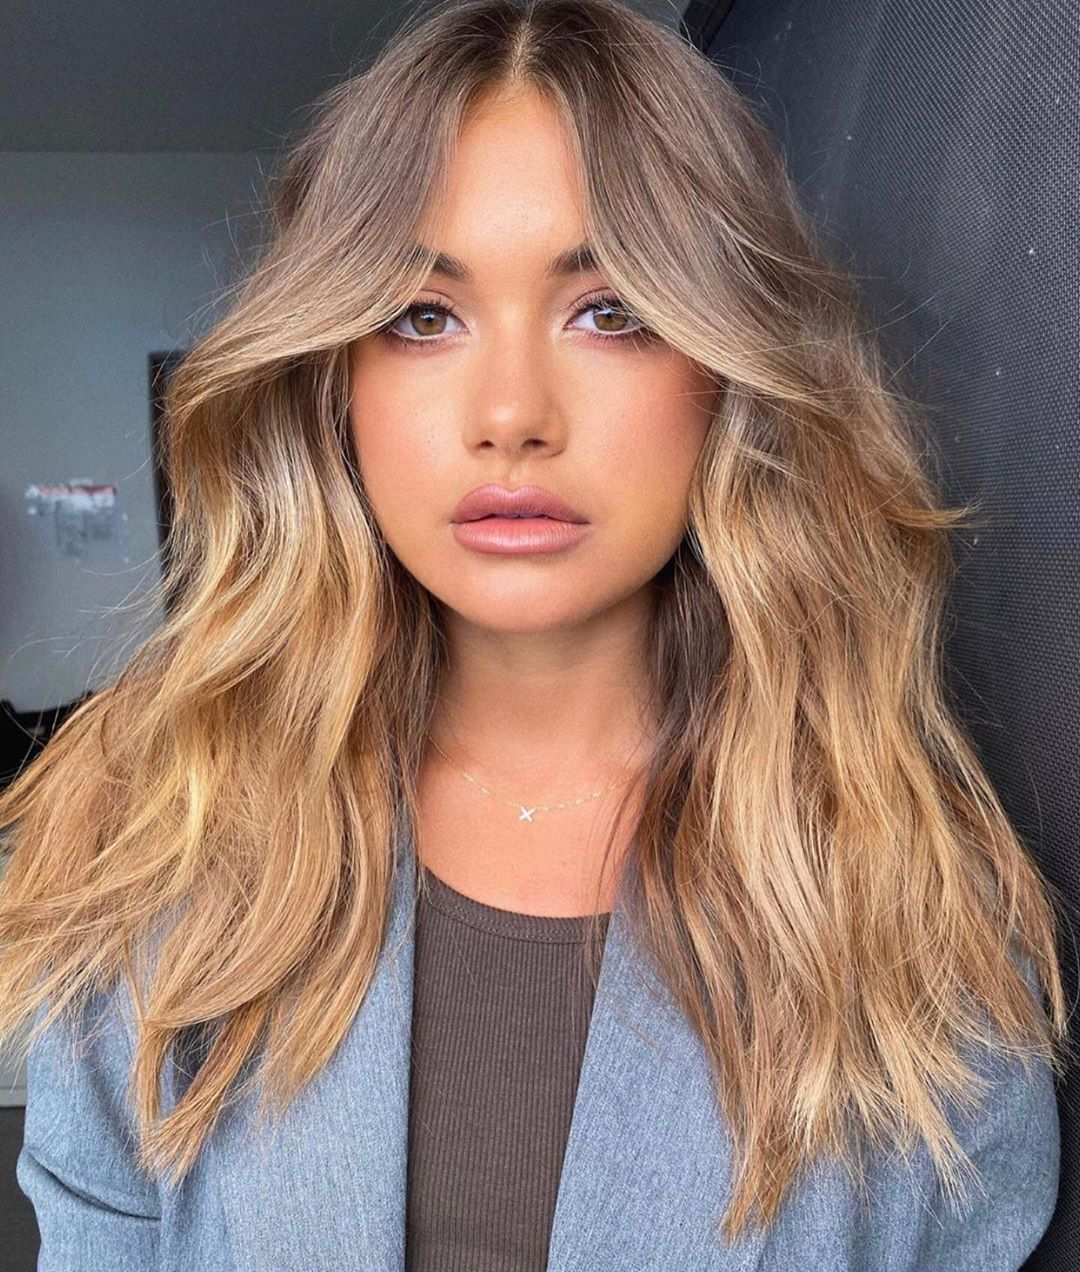 25 Slimming Hairstyles For Round Faces 2020 Ultimate Hair Guide In 2020 Hair Styles Haircuts For Wavy Hair Long Hair Styles